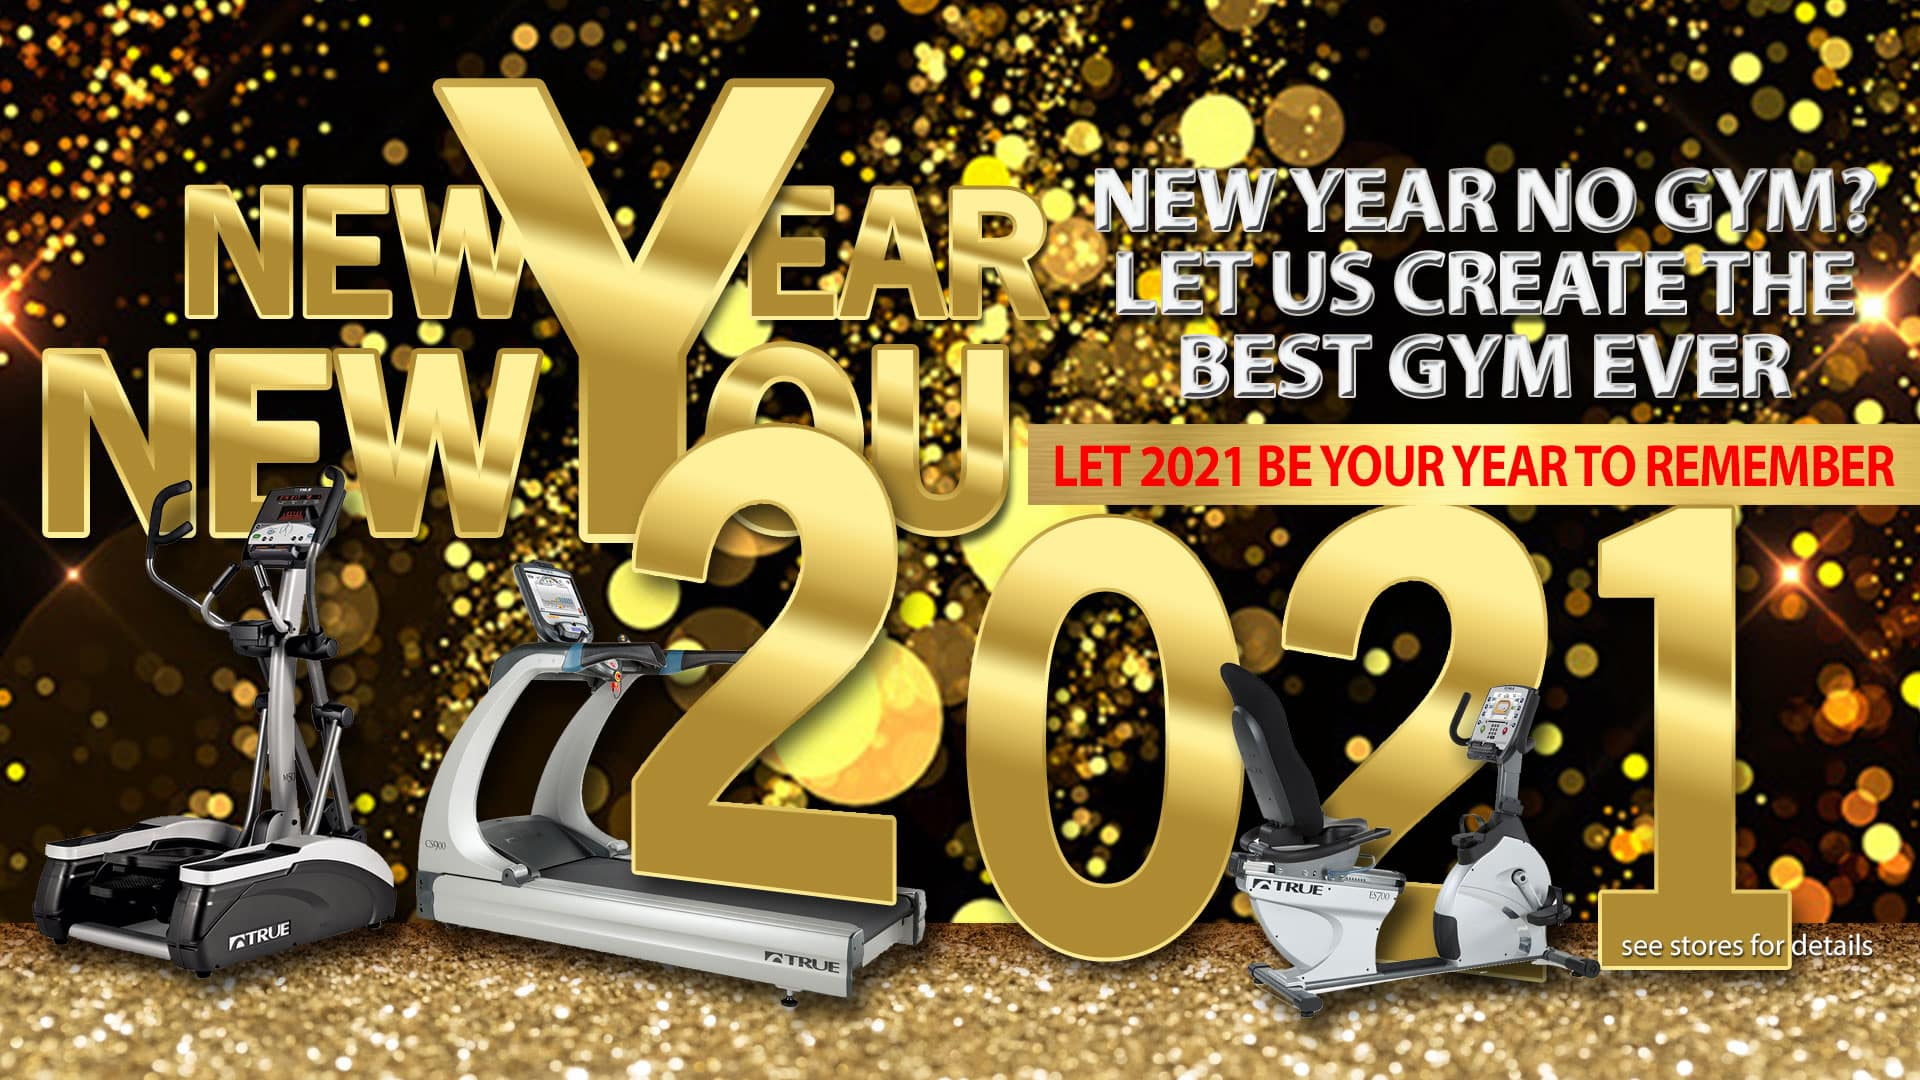 a New Year New Gym